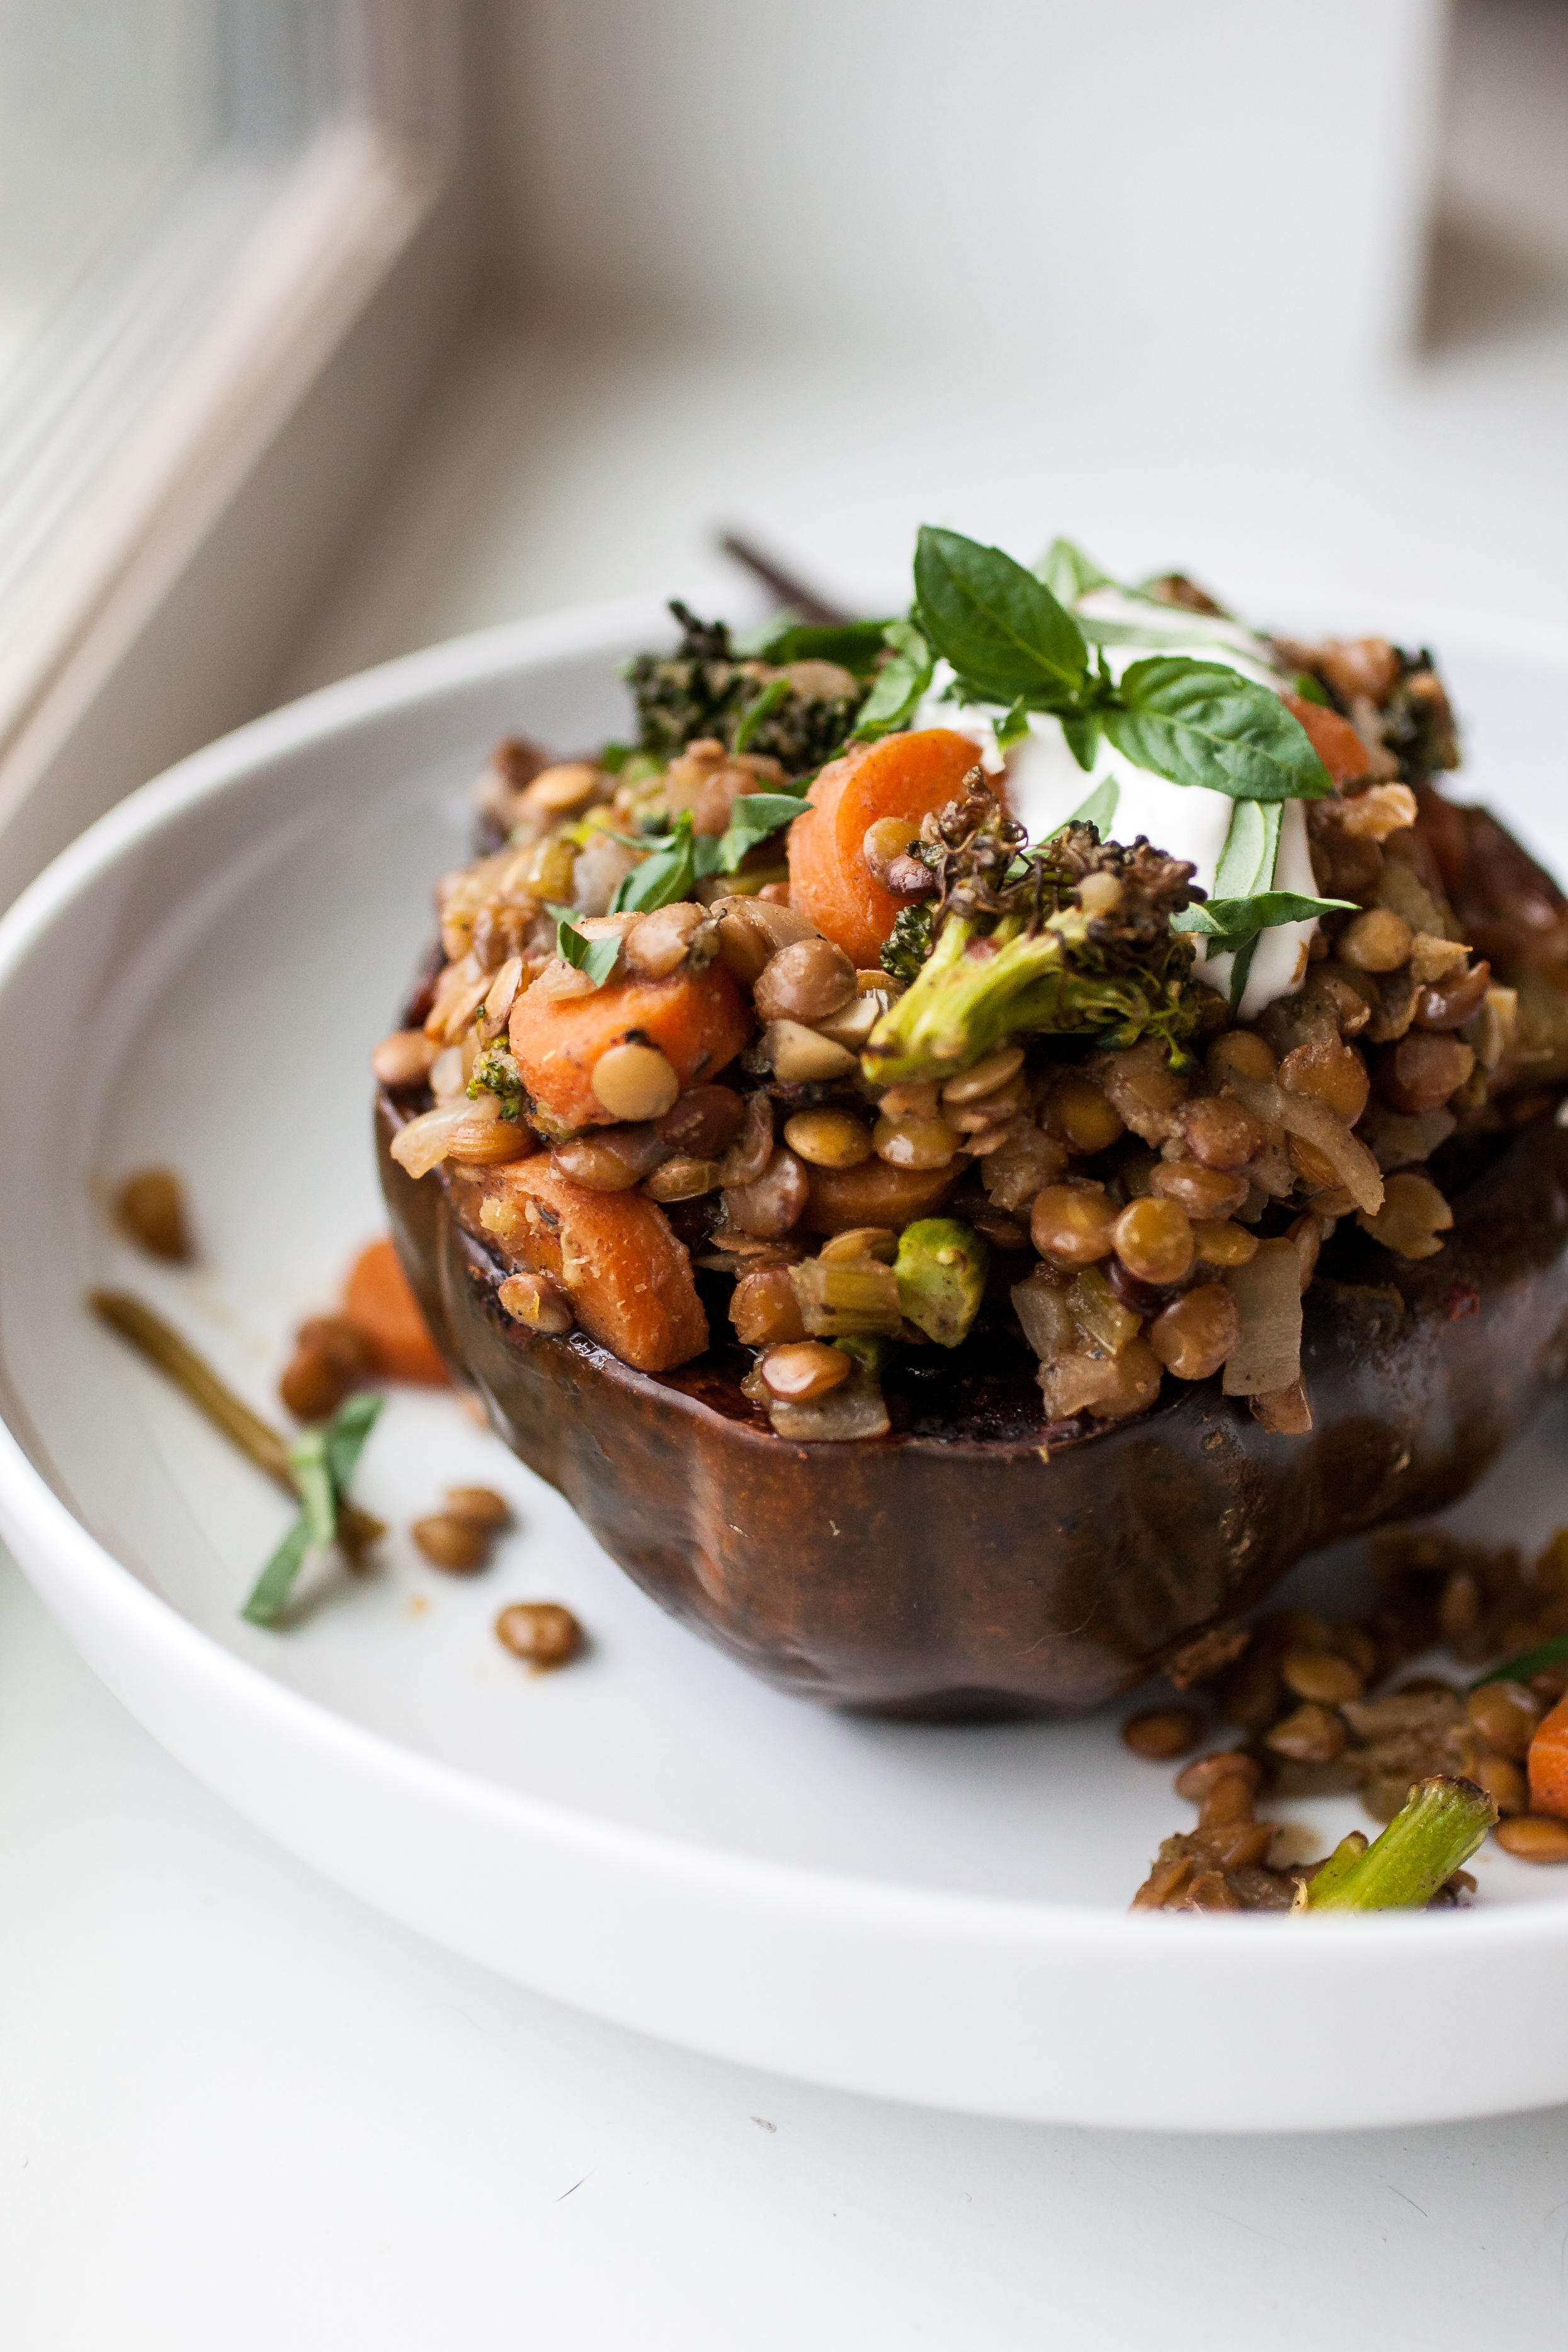 Produce On Parade - Garam Masala Lentil & Vegetable Squash Bowls  - Spiced garam masala lentils combine with an assortment of savory vegetables, nestled in a roasted acorn squash half all topped with vegan sour cream and fresh basil.